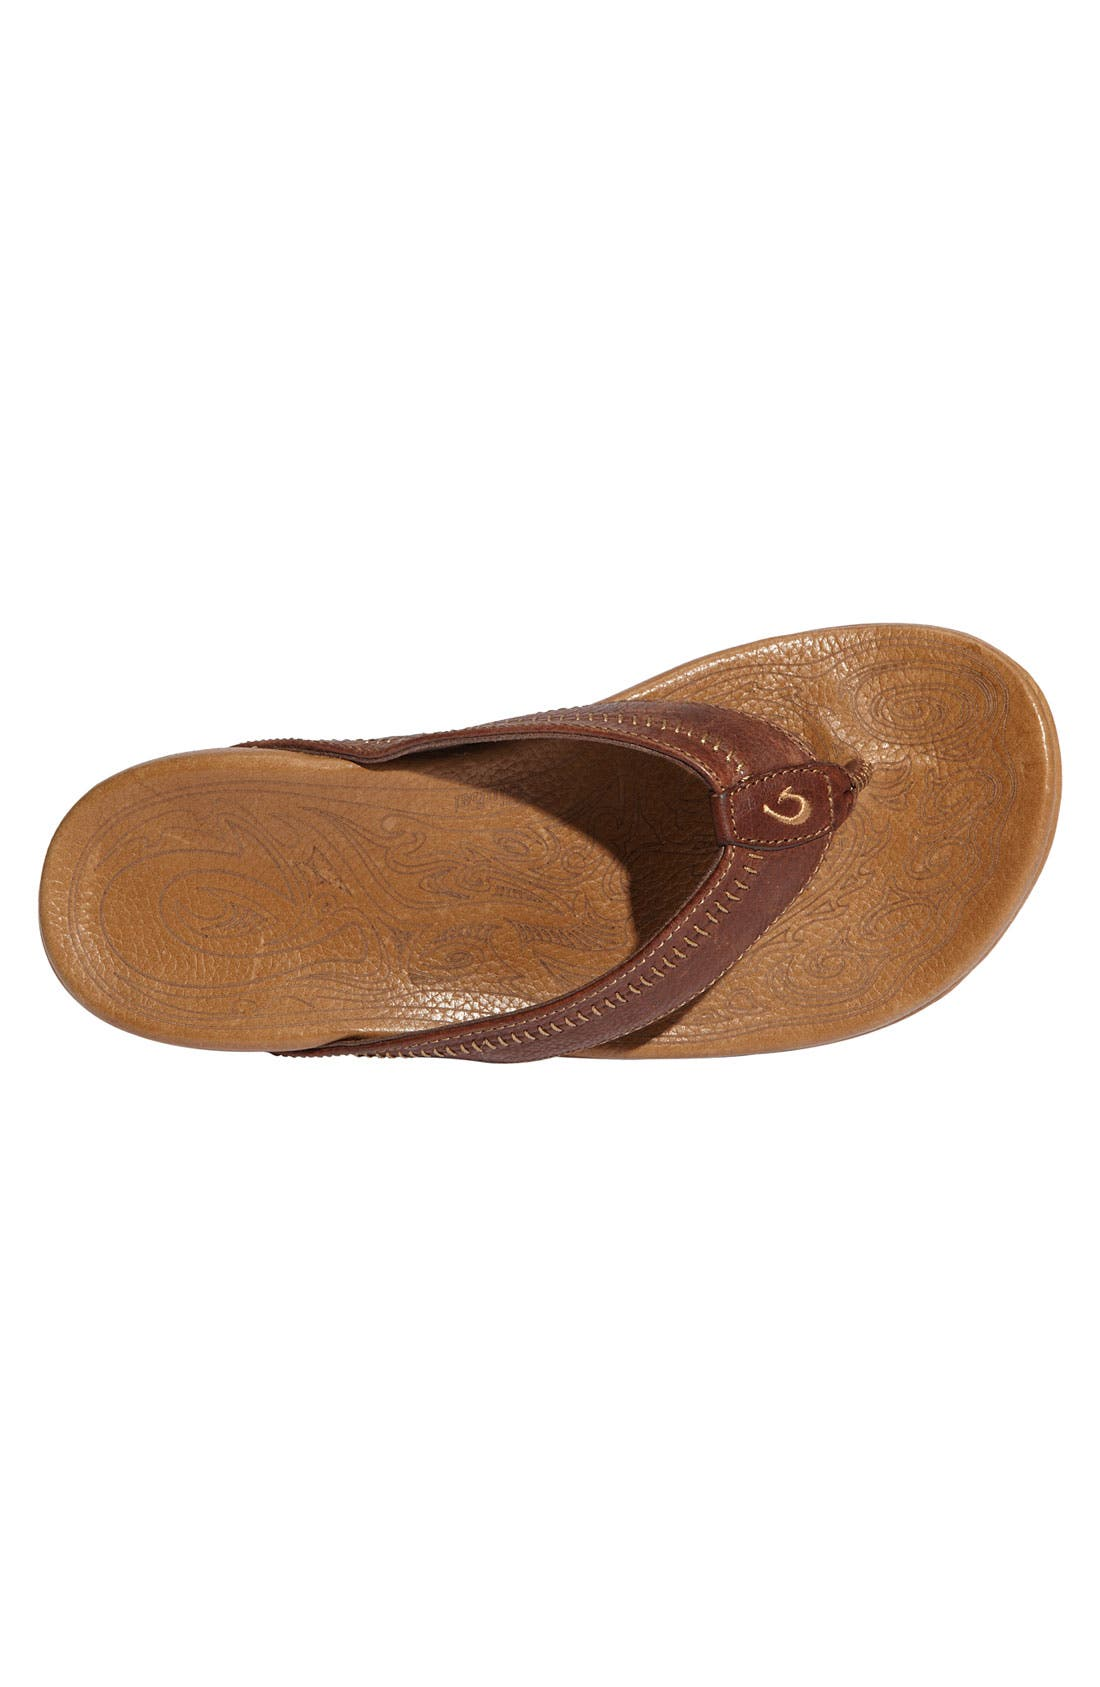 'Hiapo' Flip Flop,                             Alternate thumbnail 6, color,                             DARK JAVA TOFFEE